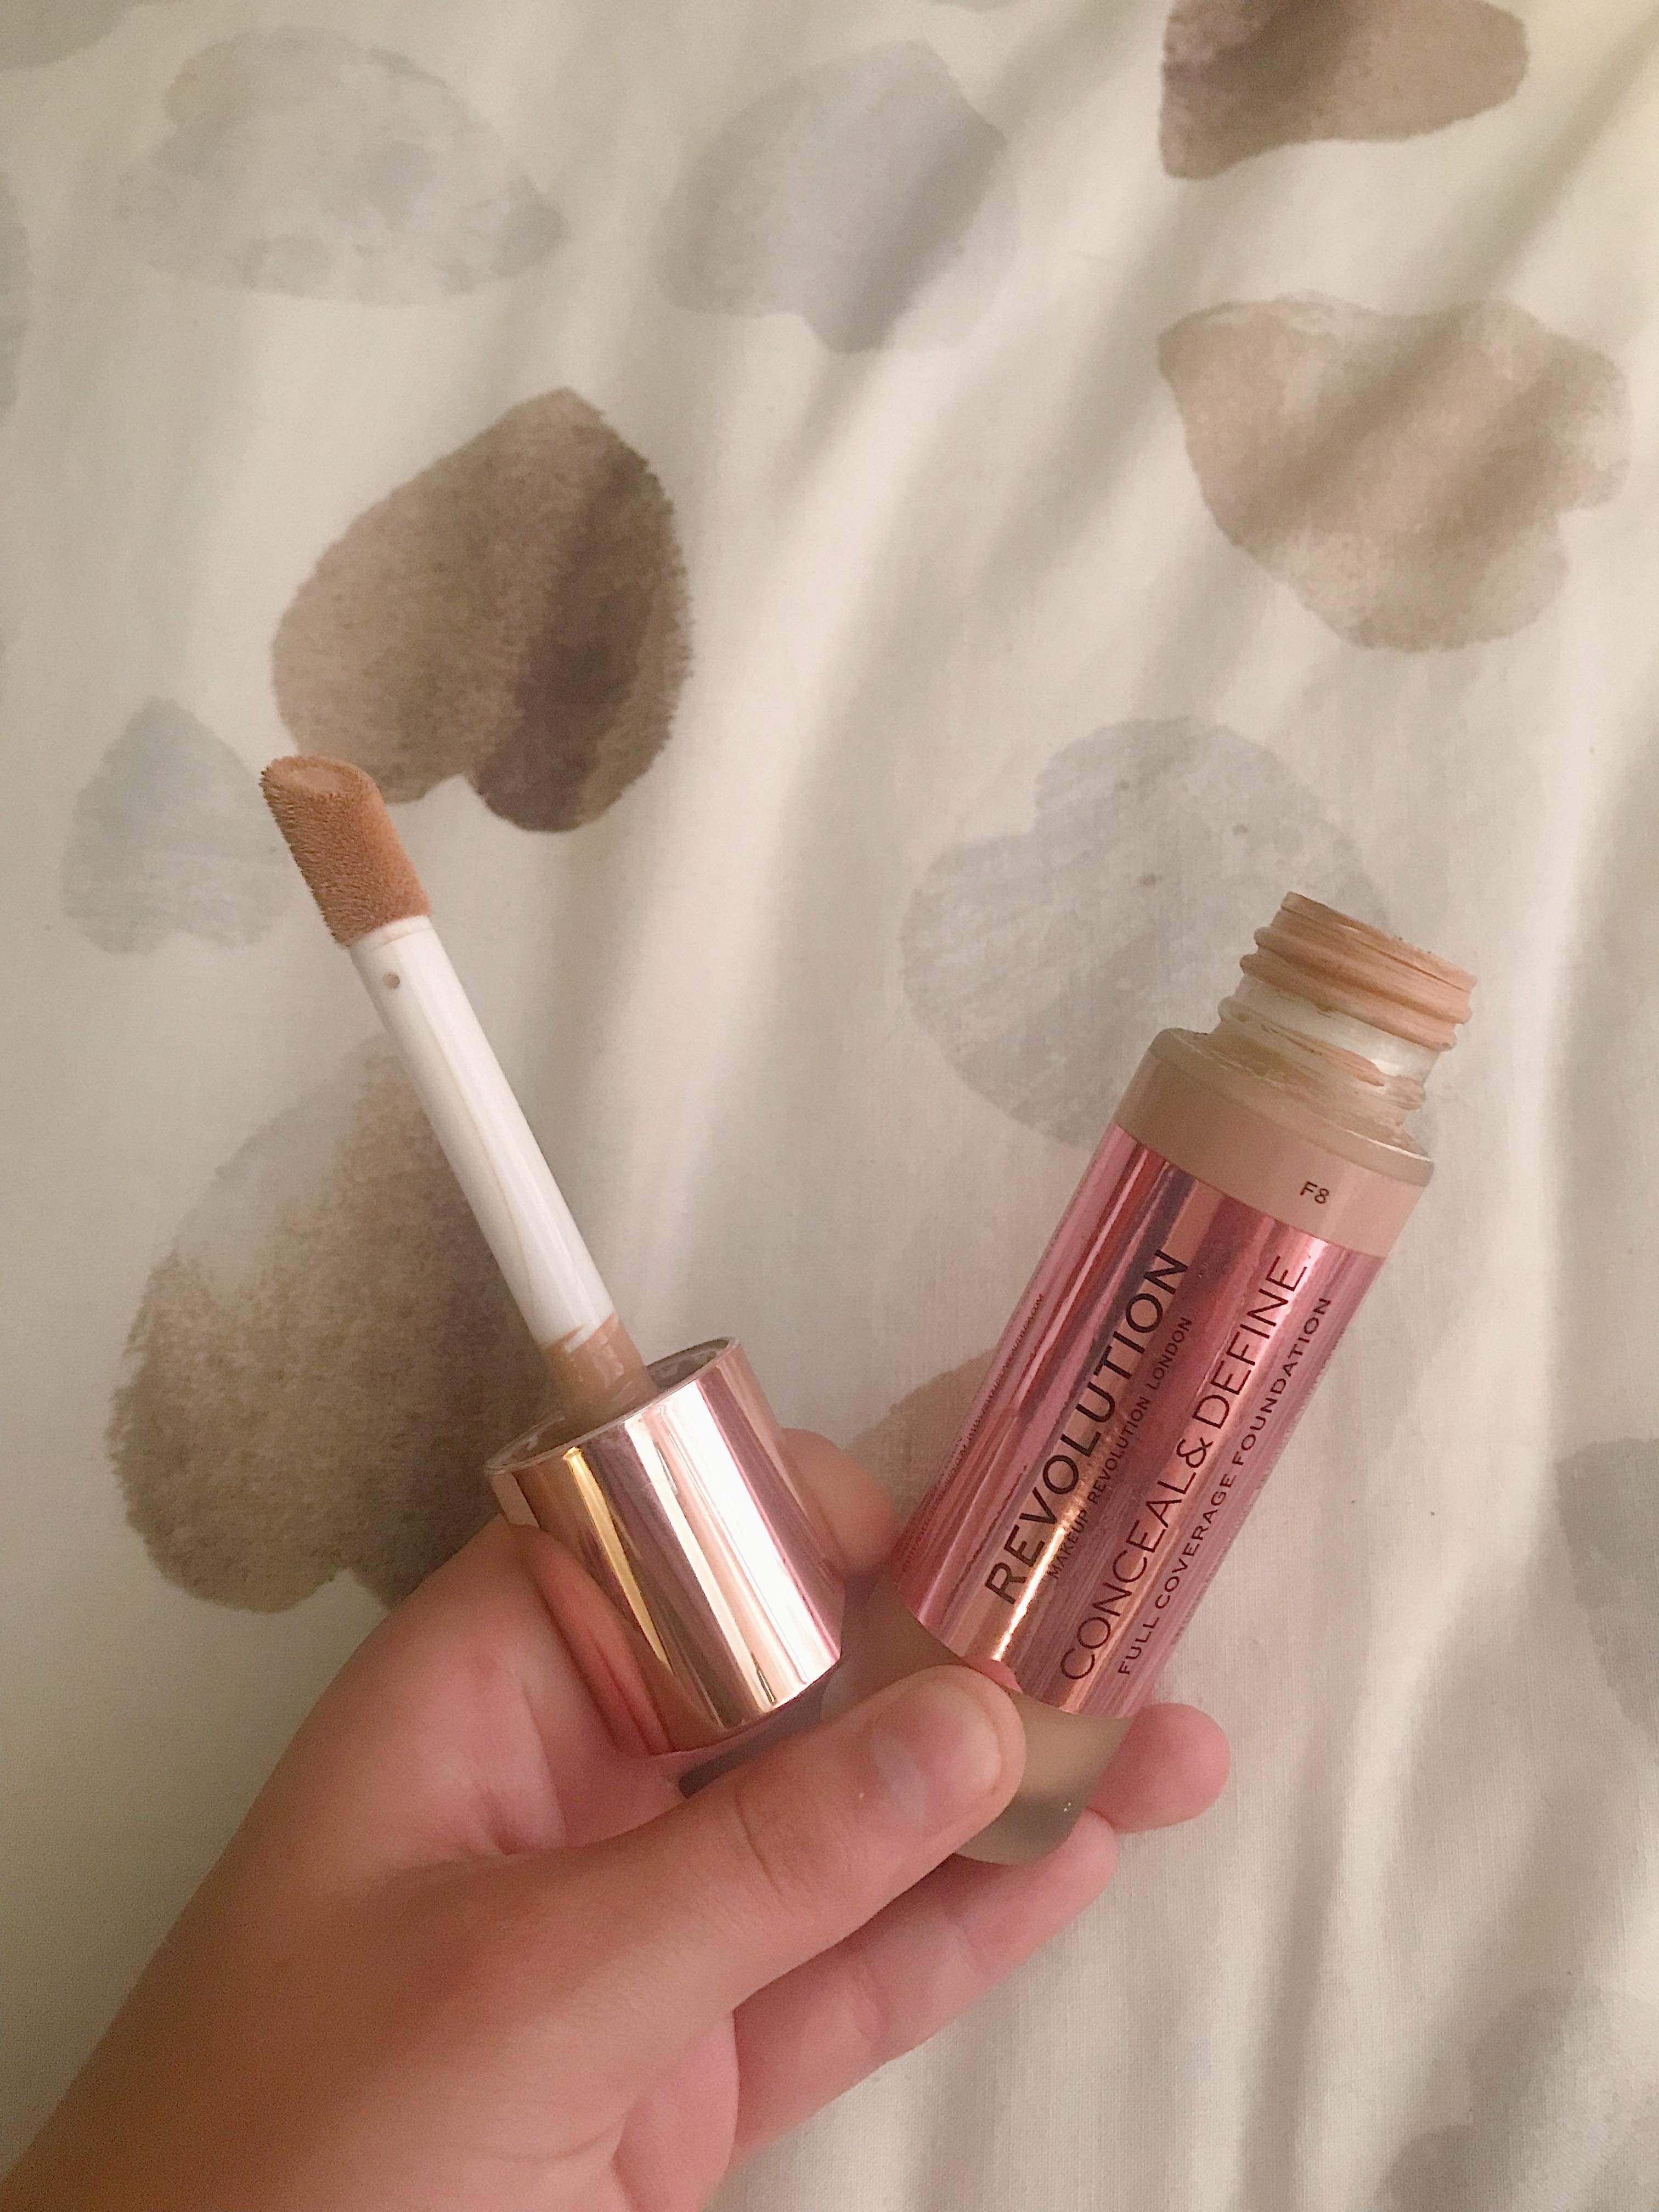 Revolution conceal and define foundation with concealer want applicator